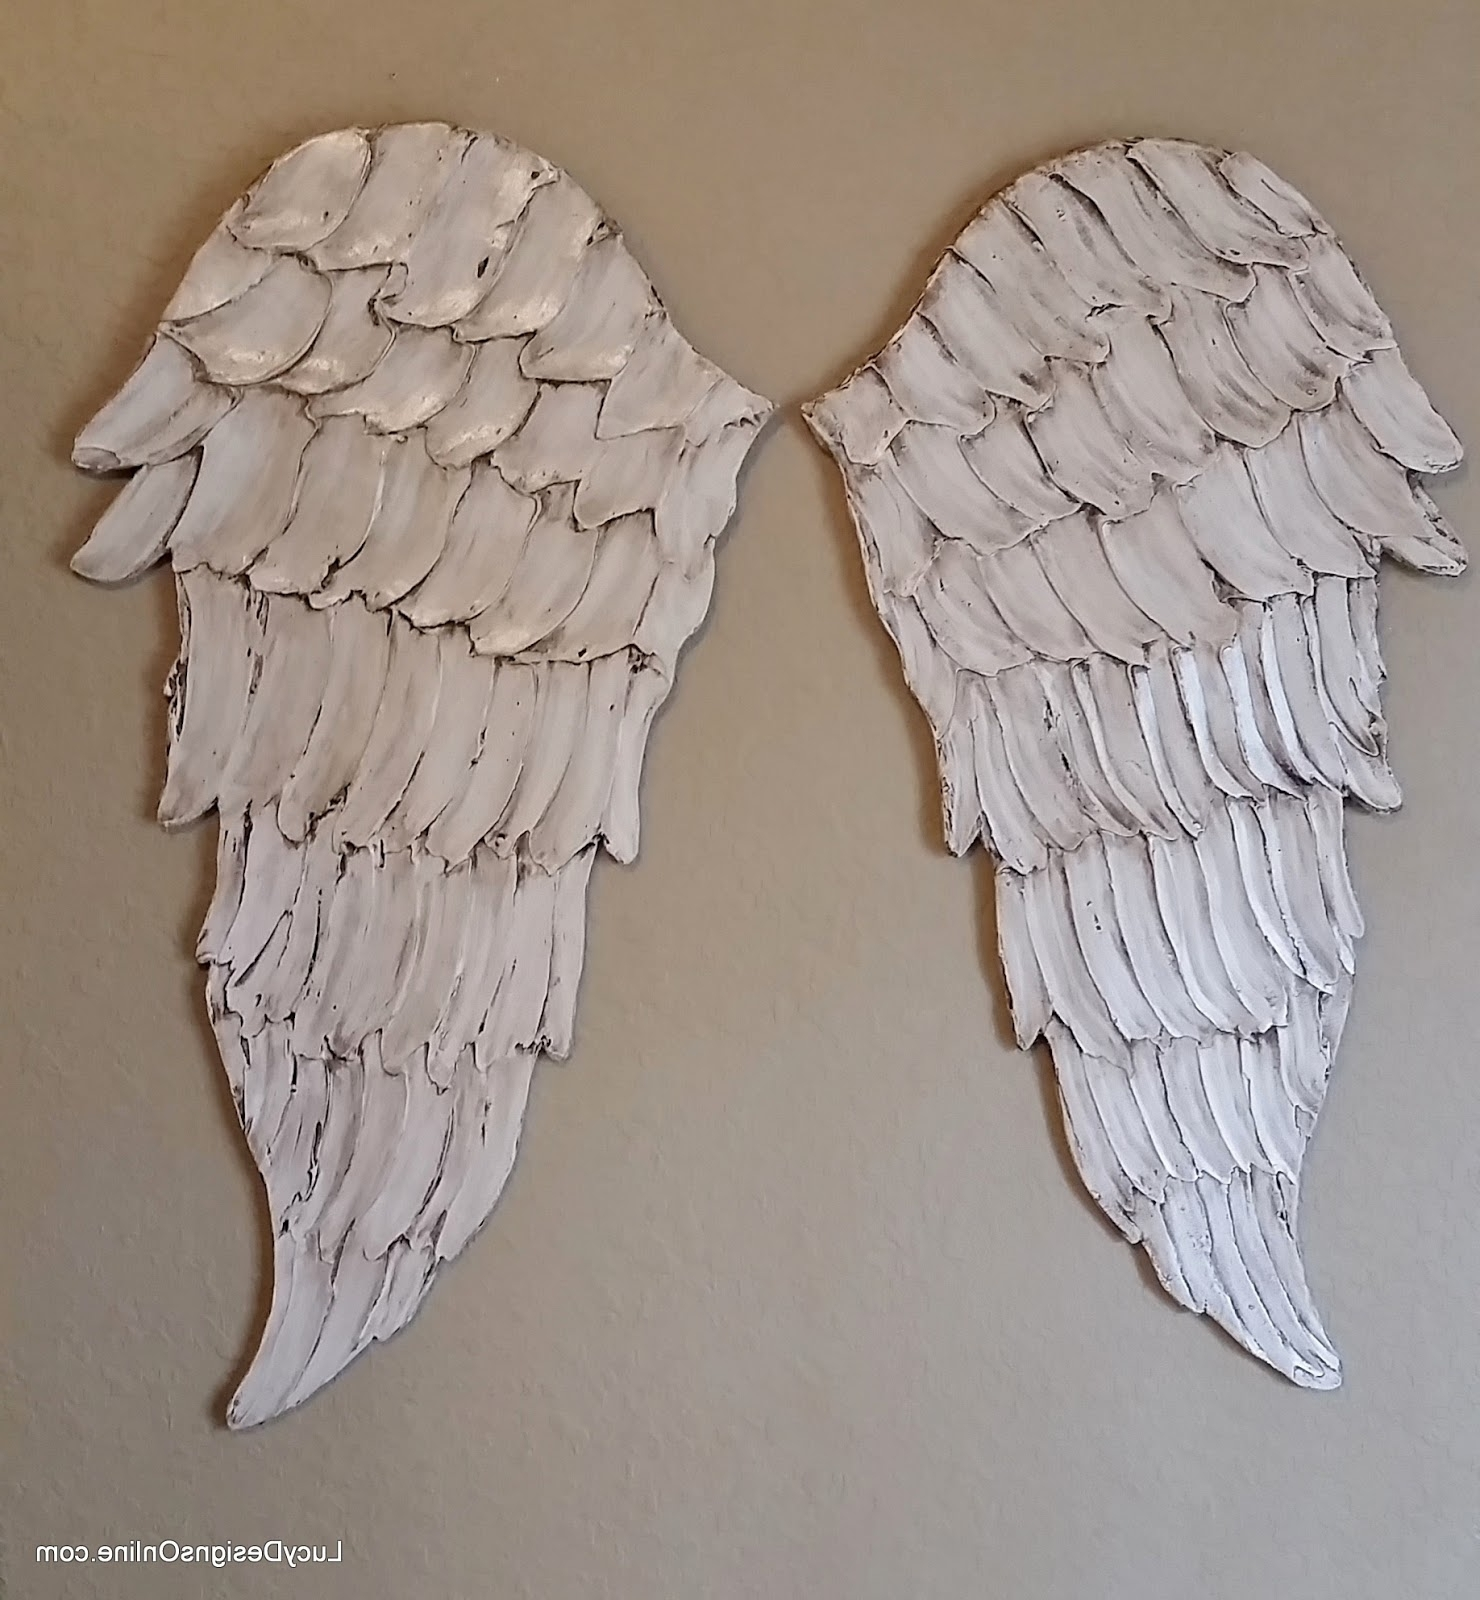 Well Known Angel Wing Wall Art With Angel Wings Textured Wood, Wall Art, Carved Wood Look, Angel Wing (View 11 of 15)